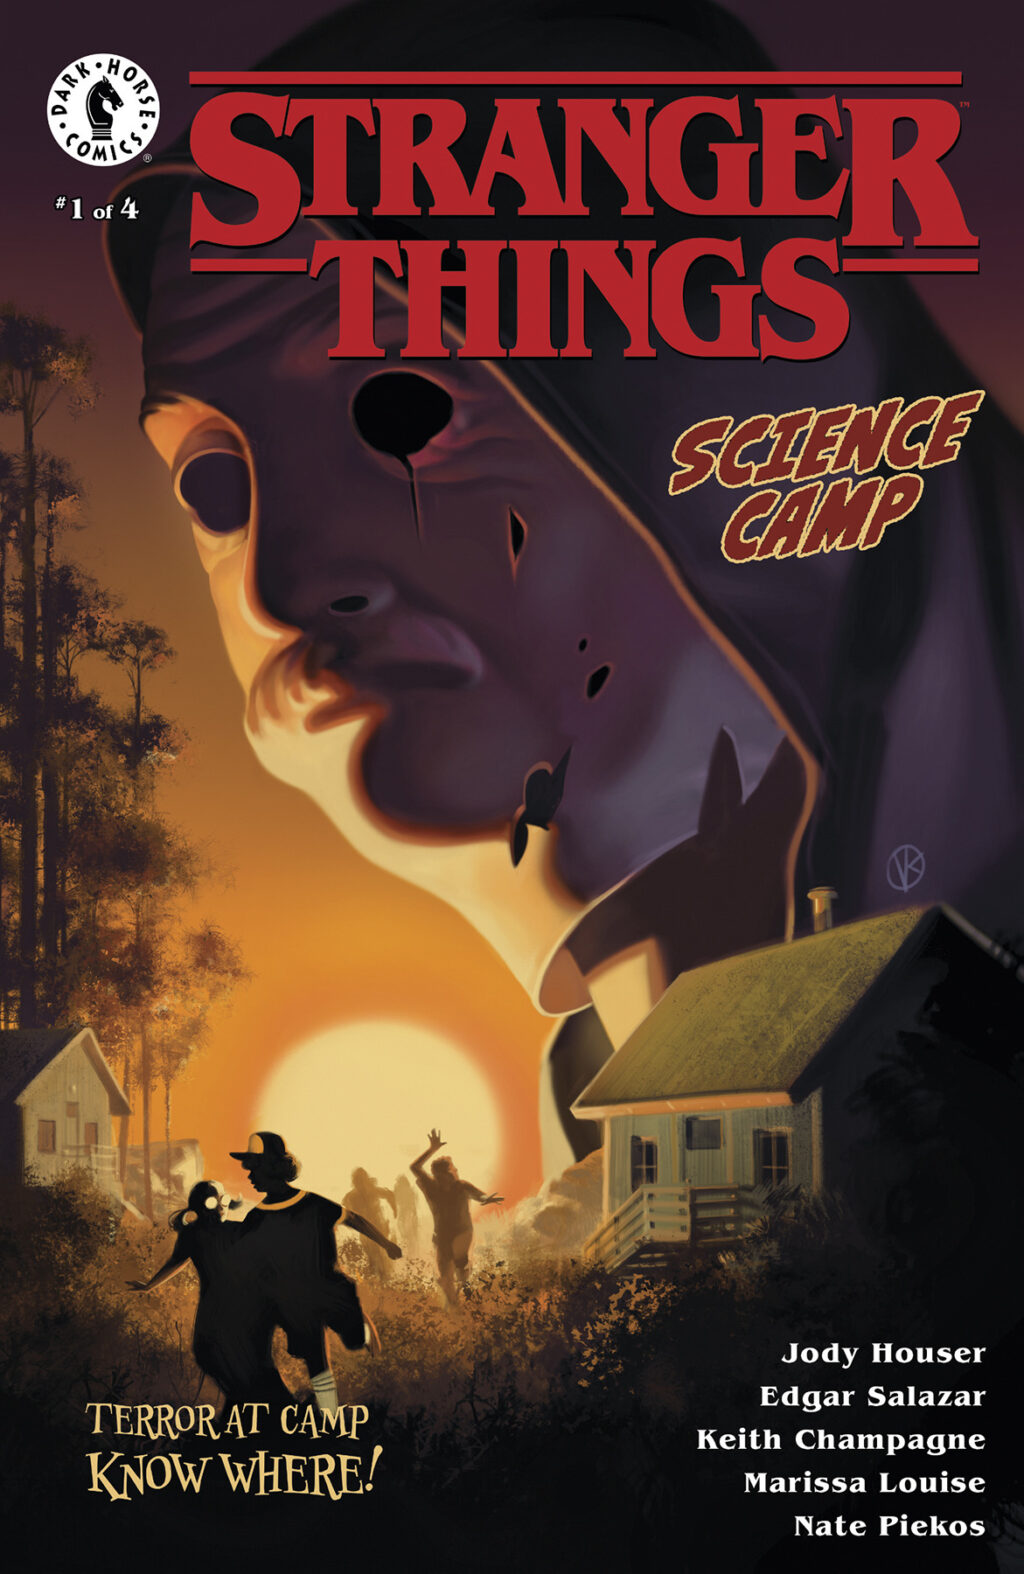 Stranger Things Science Camp 1024x1574 - STRANGER THINGS: SCIENCE CAMP Comic Miniseries Kicks Off This September